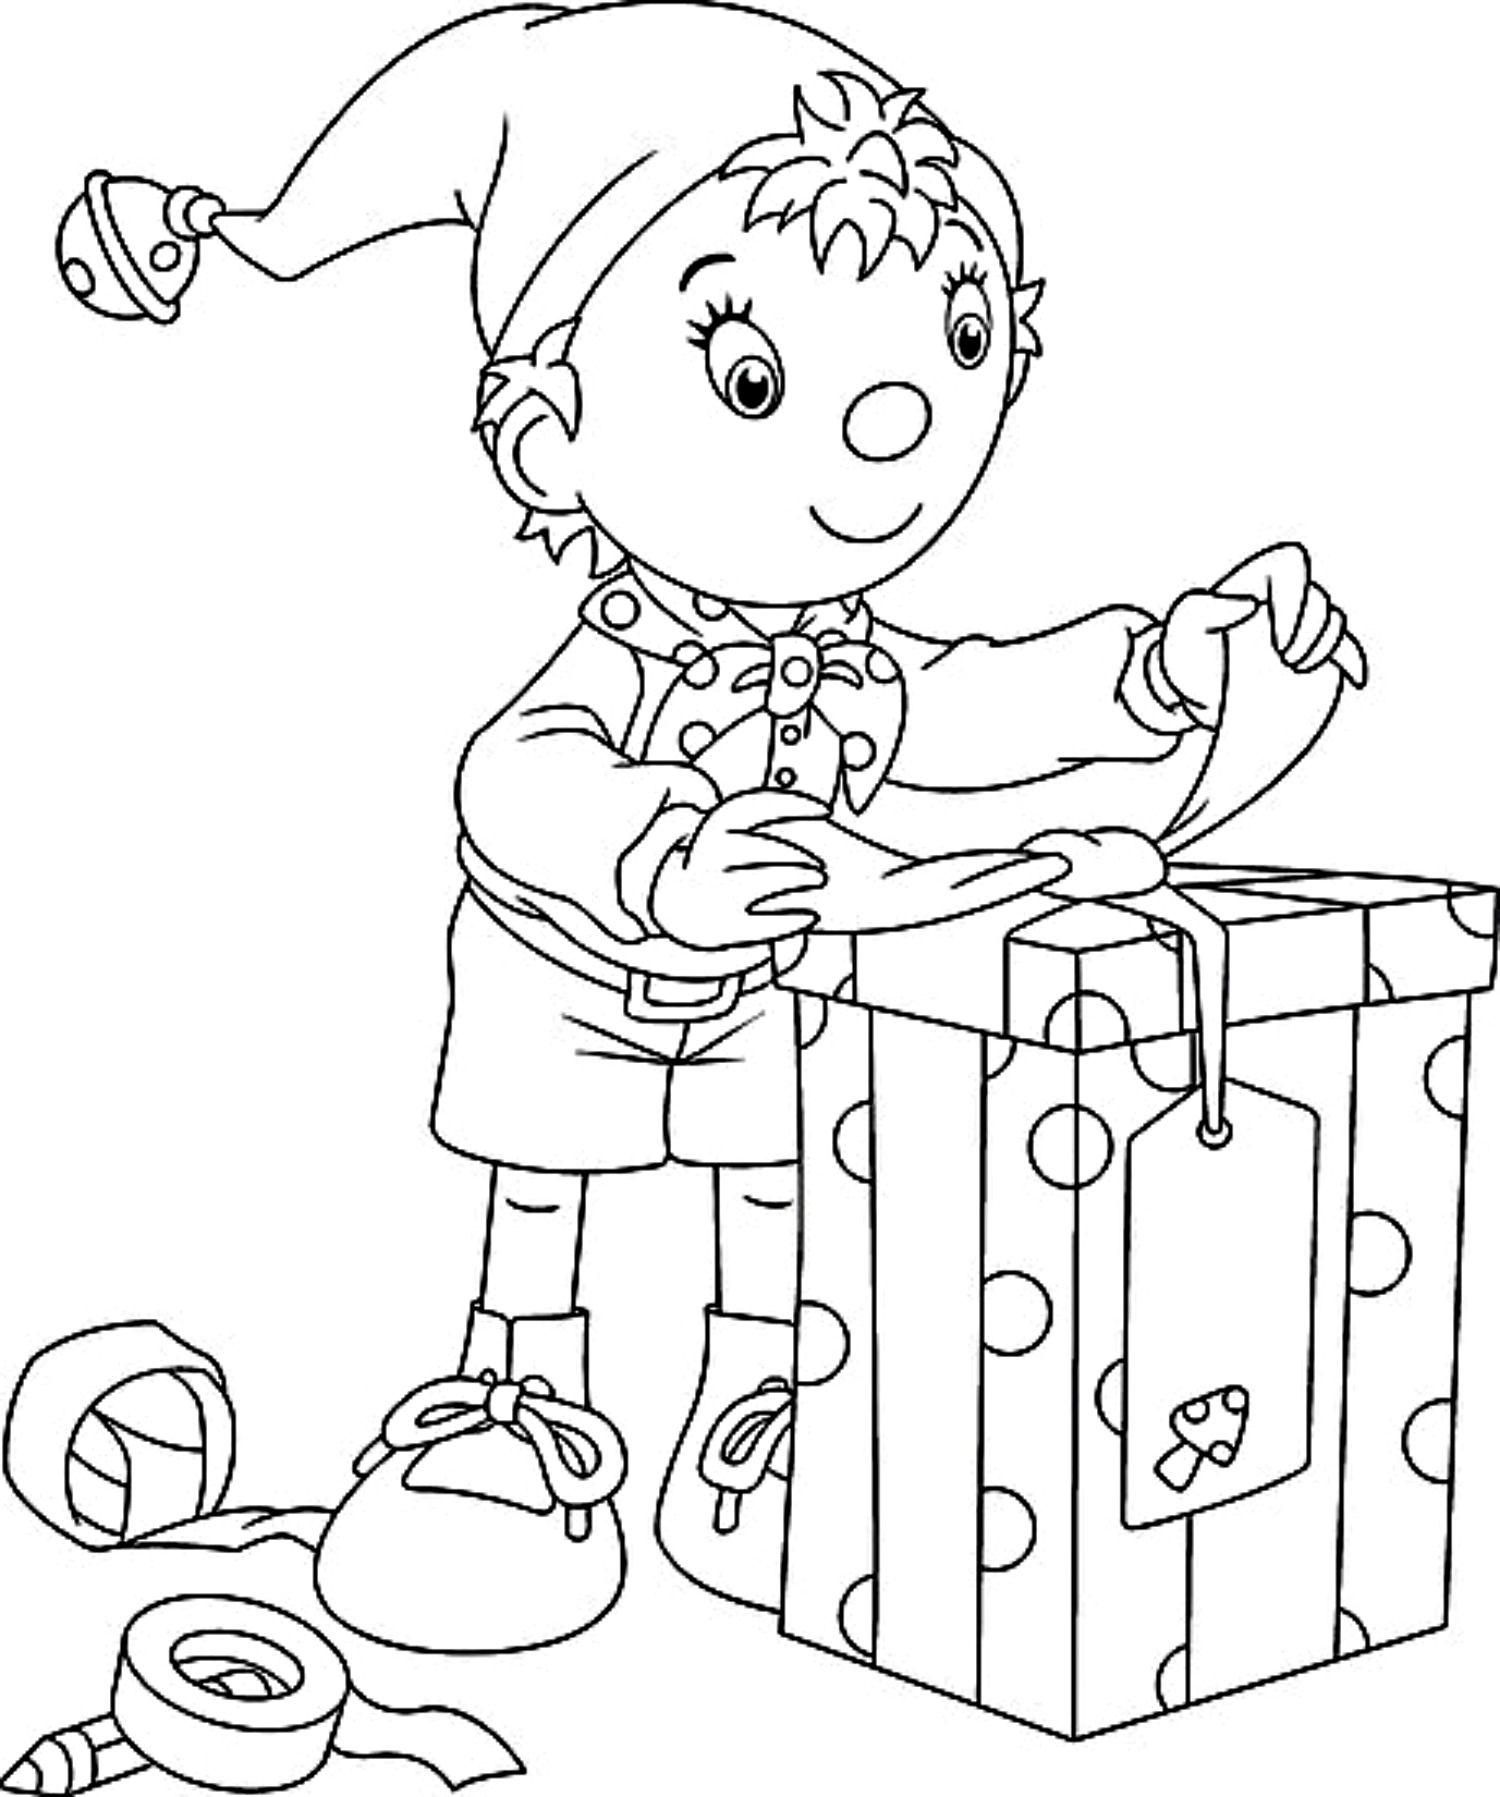 Christmas Elf Coloring Pages Printable With CHRISTMAS COLORING PAGE Santa Song And Free